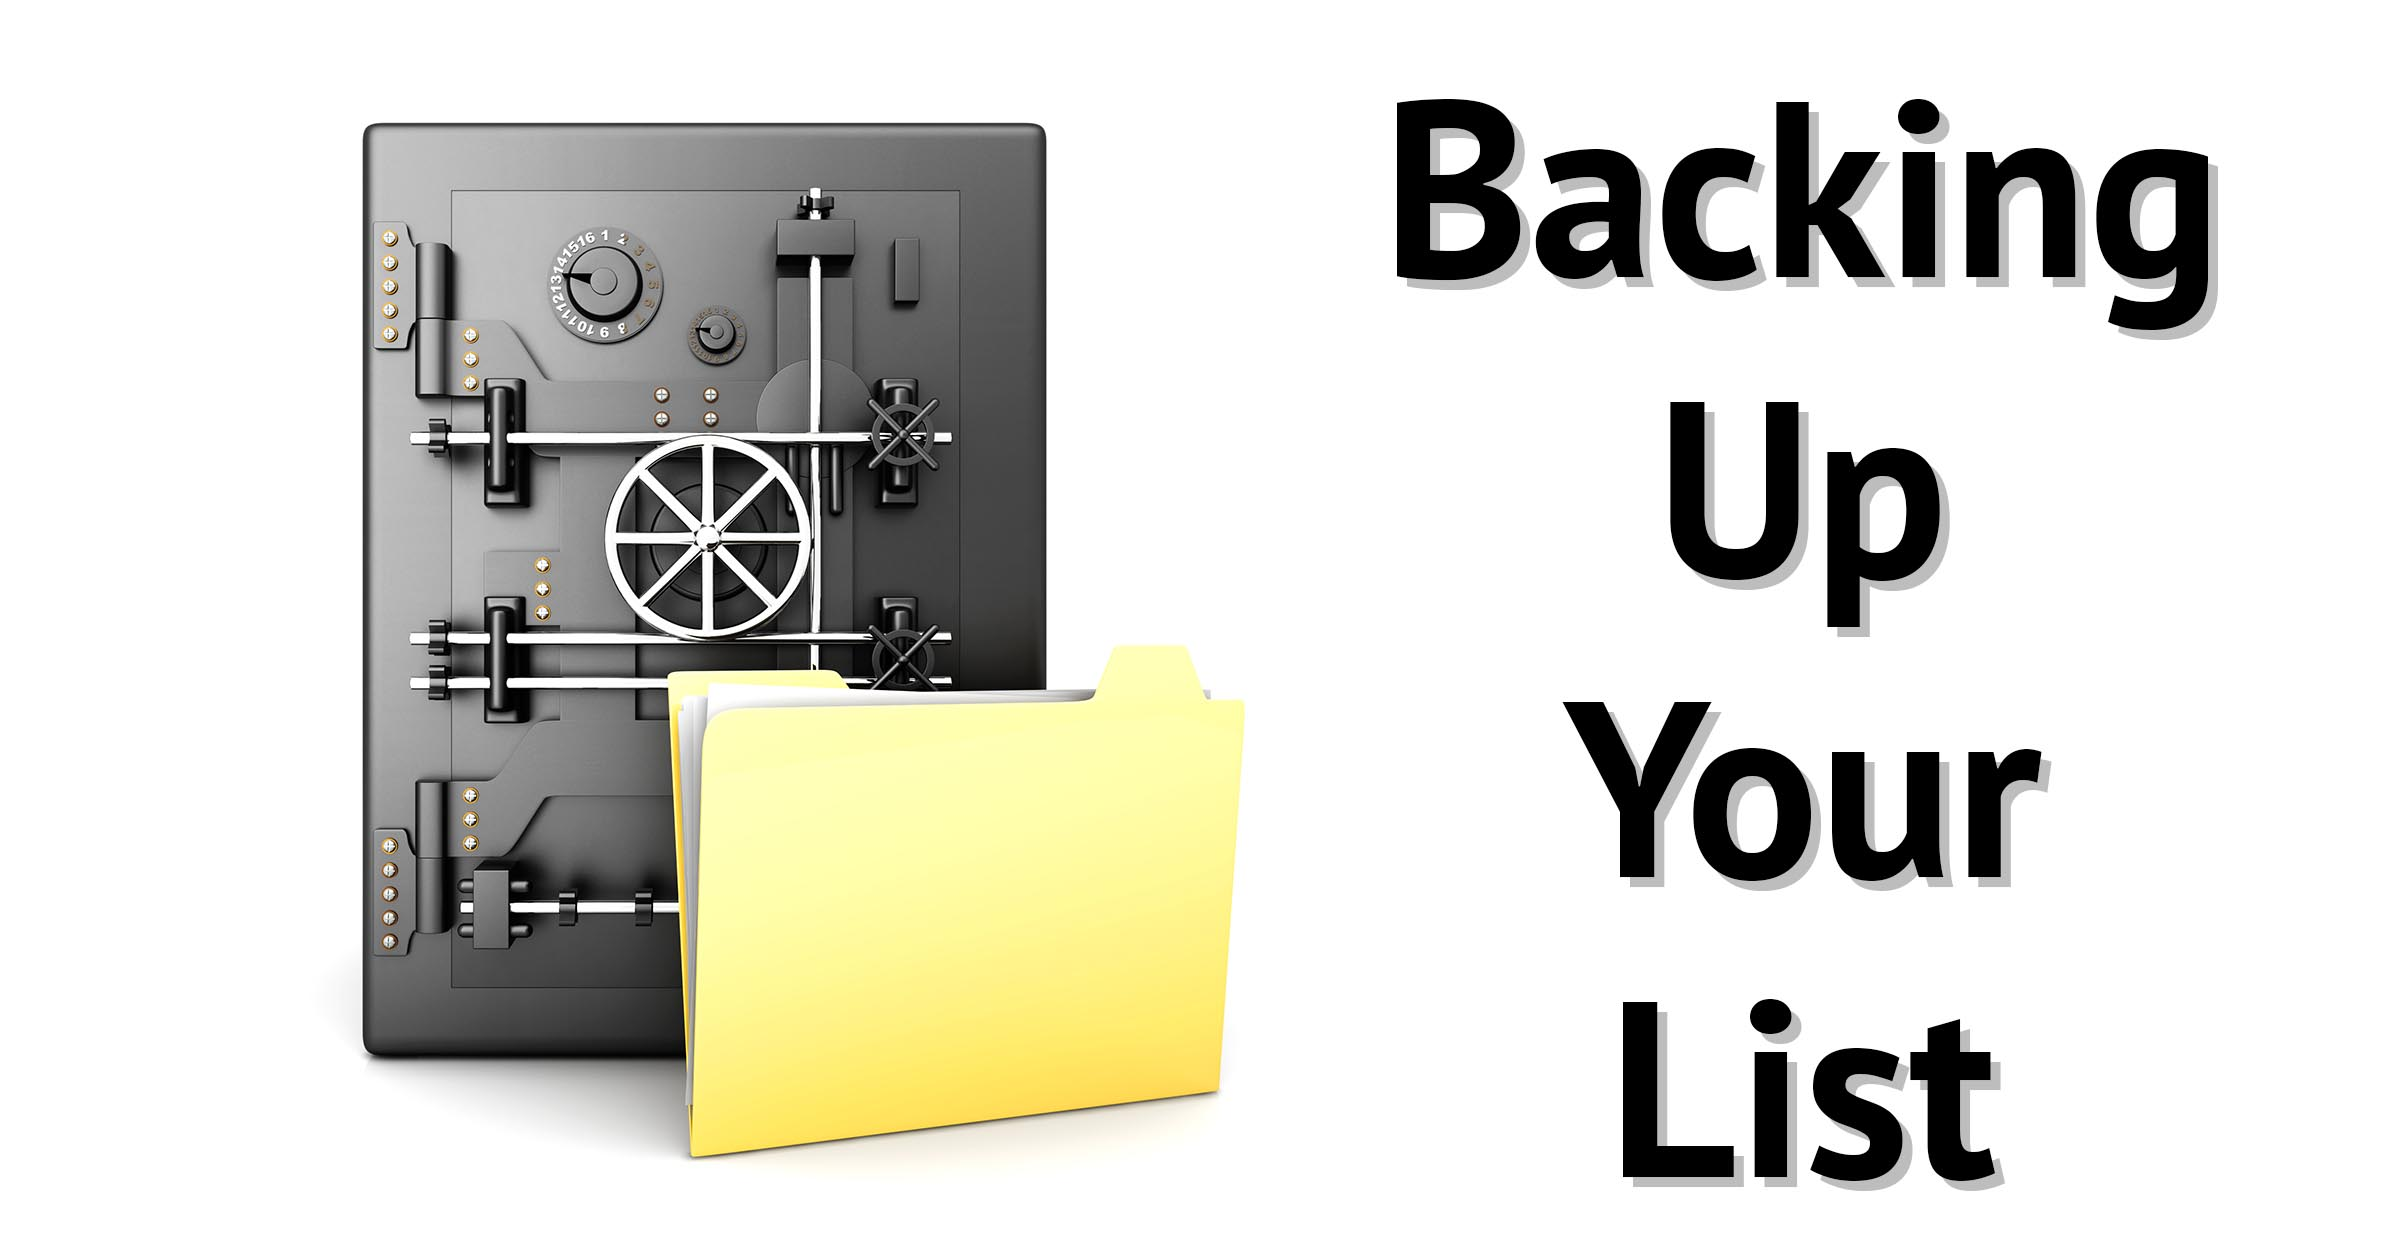 Backing Up Your List